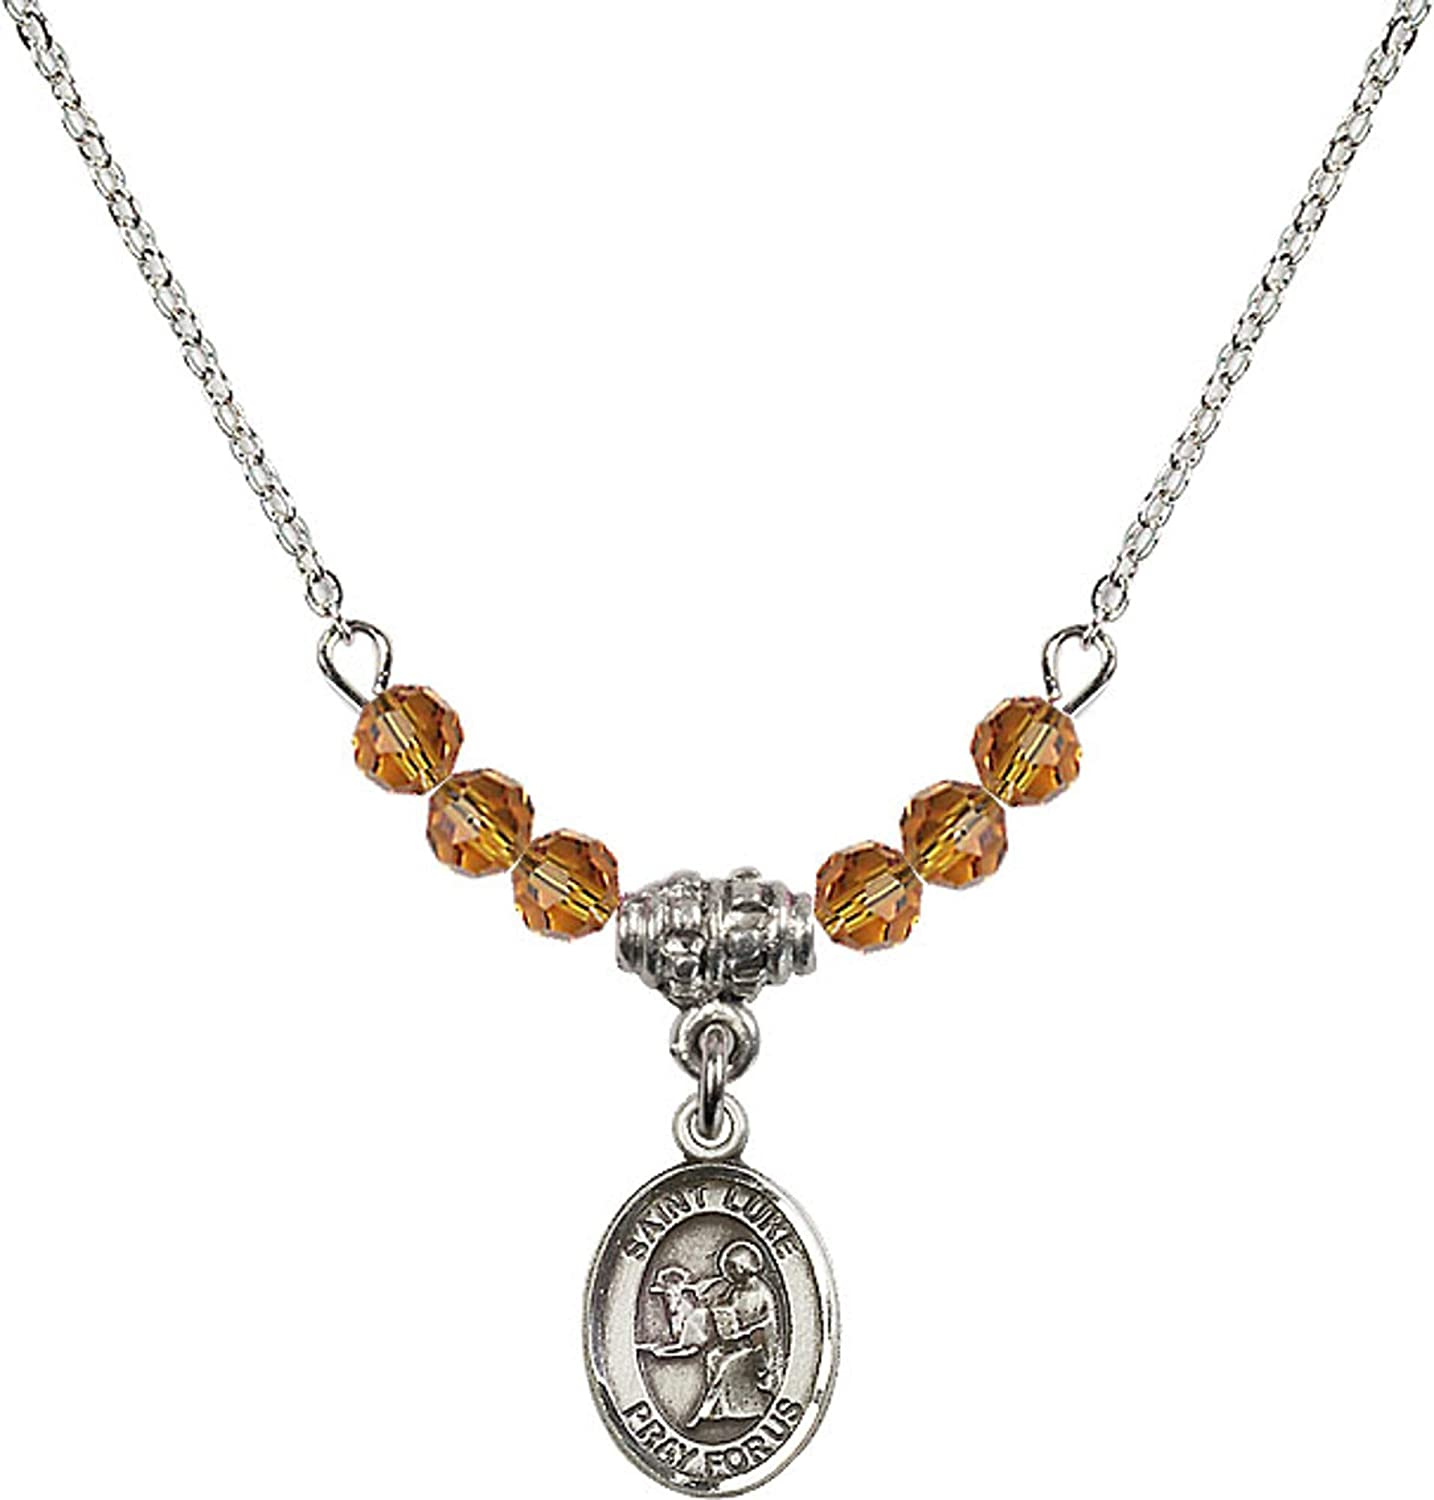 Bonyak Jewelry 18 Inch Rhodium Plated Necklace w// 4mm Yellow November Birth Month Stone Beads and Saint Luke The Apostle Charm